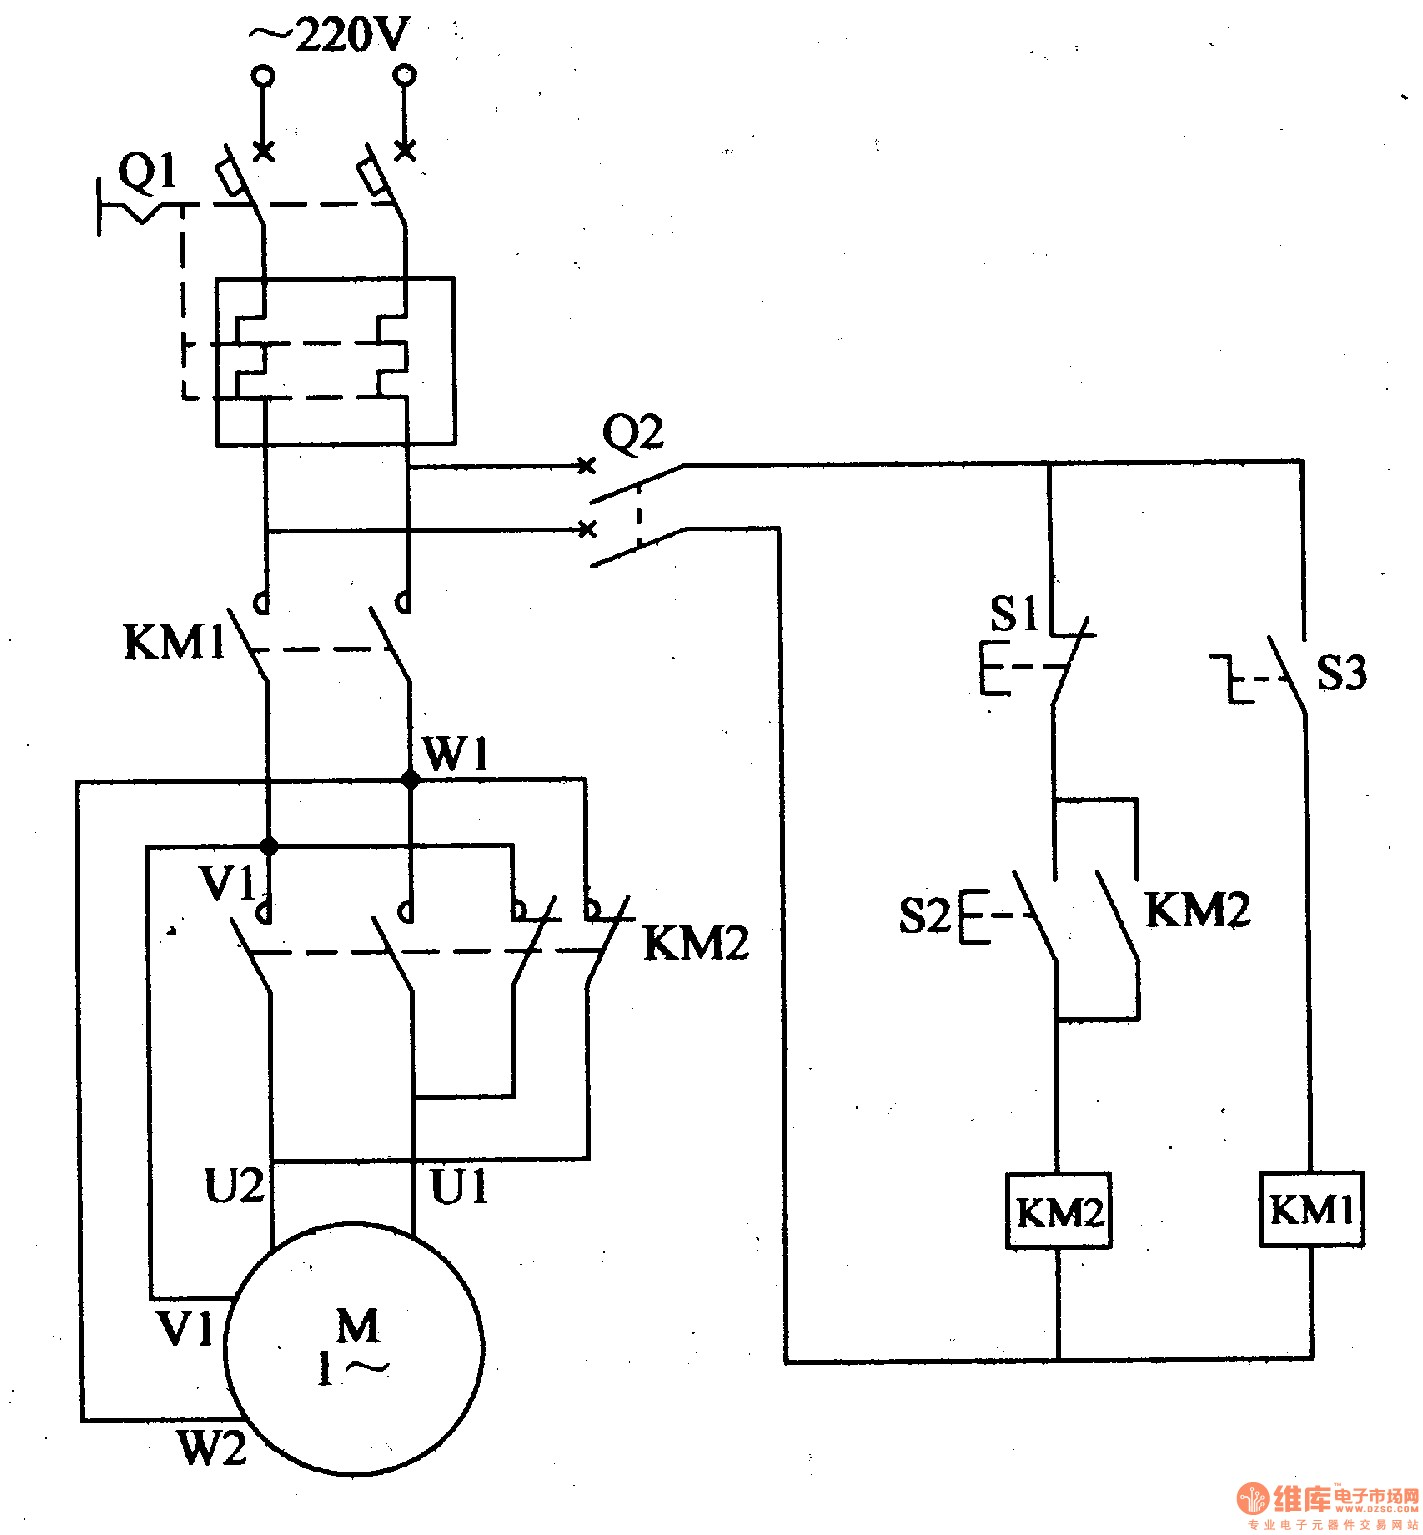 Motor control panel wiring diagram wiring diagram single phase motor motor control panel wiring diagram wiring diagram single phase motor reversing switch wiring of motor control cheapraybanclubmaster Gallery